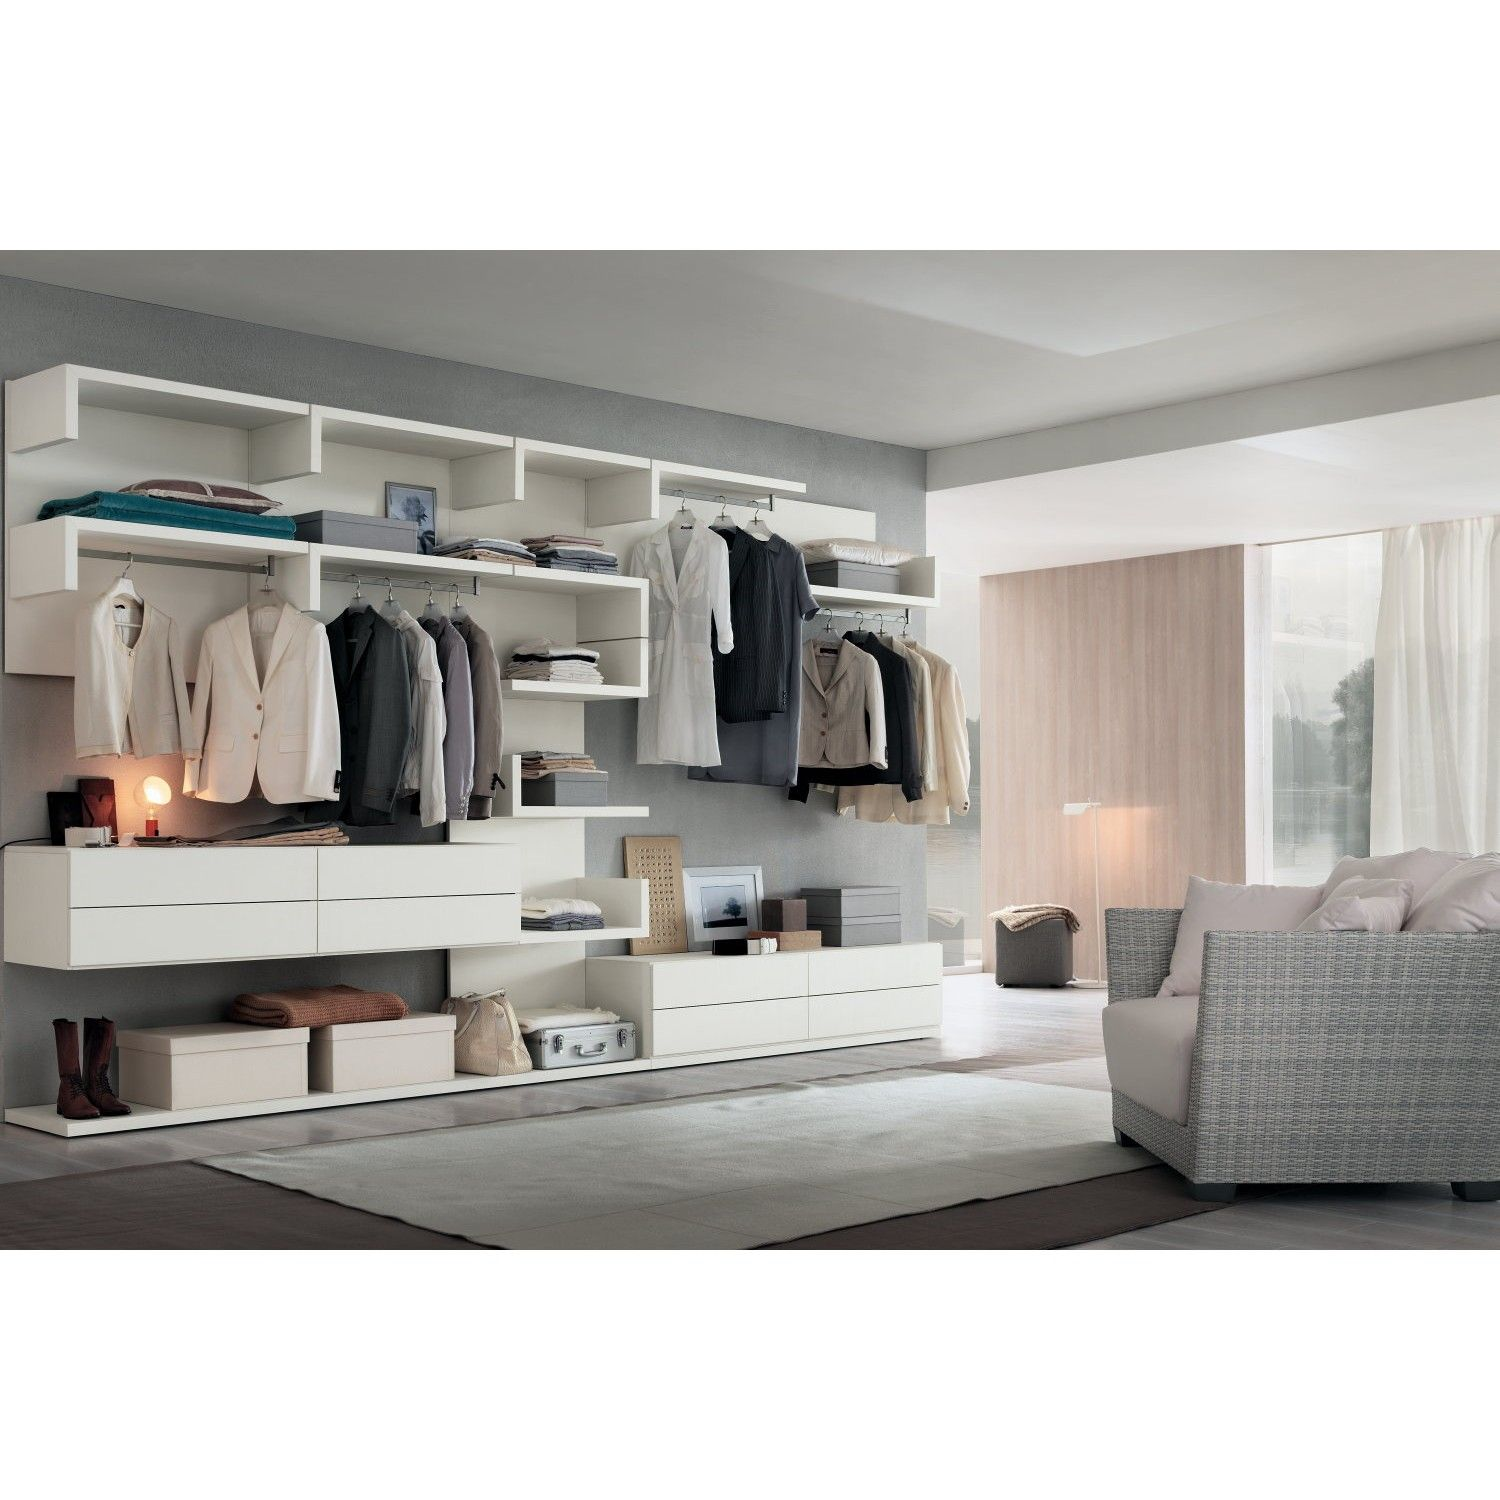 Cabina armadio componibile Easy - ARREDACLICK | closet | Pinterest